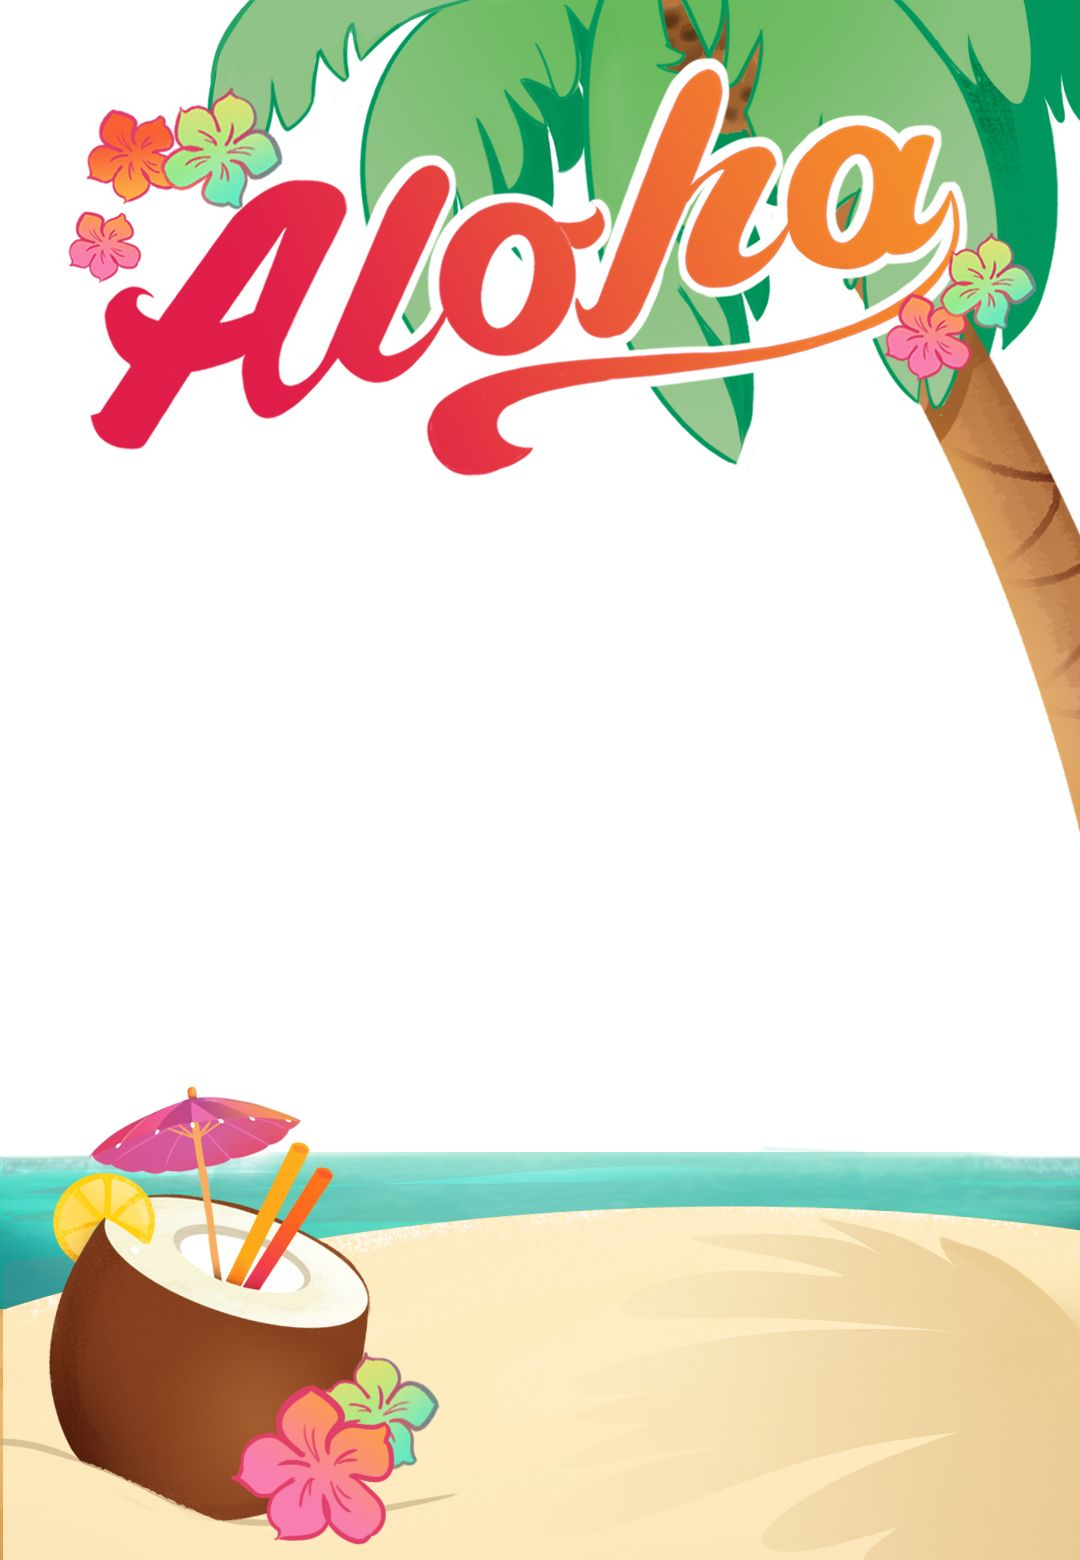 Luau Party - Free Printable Summer Party Invitation Template - Free Stork Party Invitations Printable